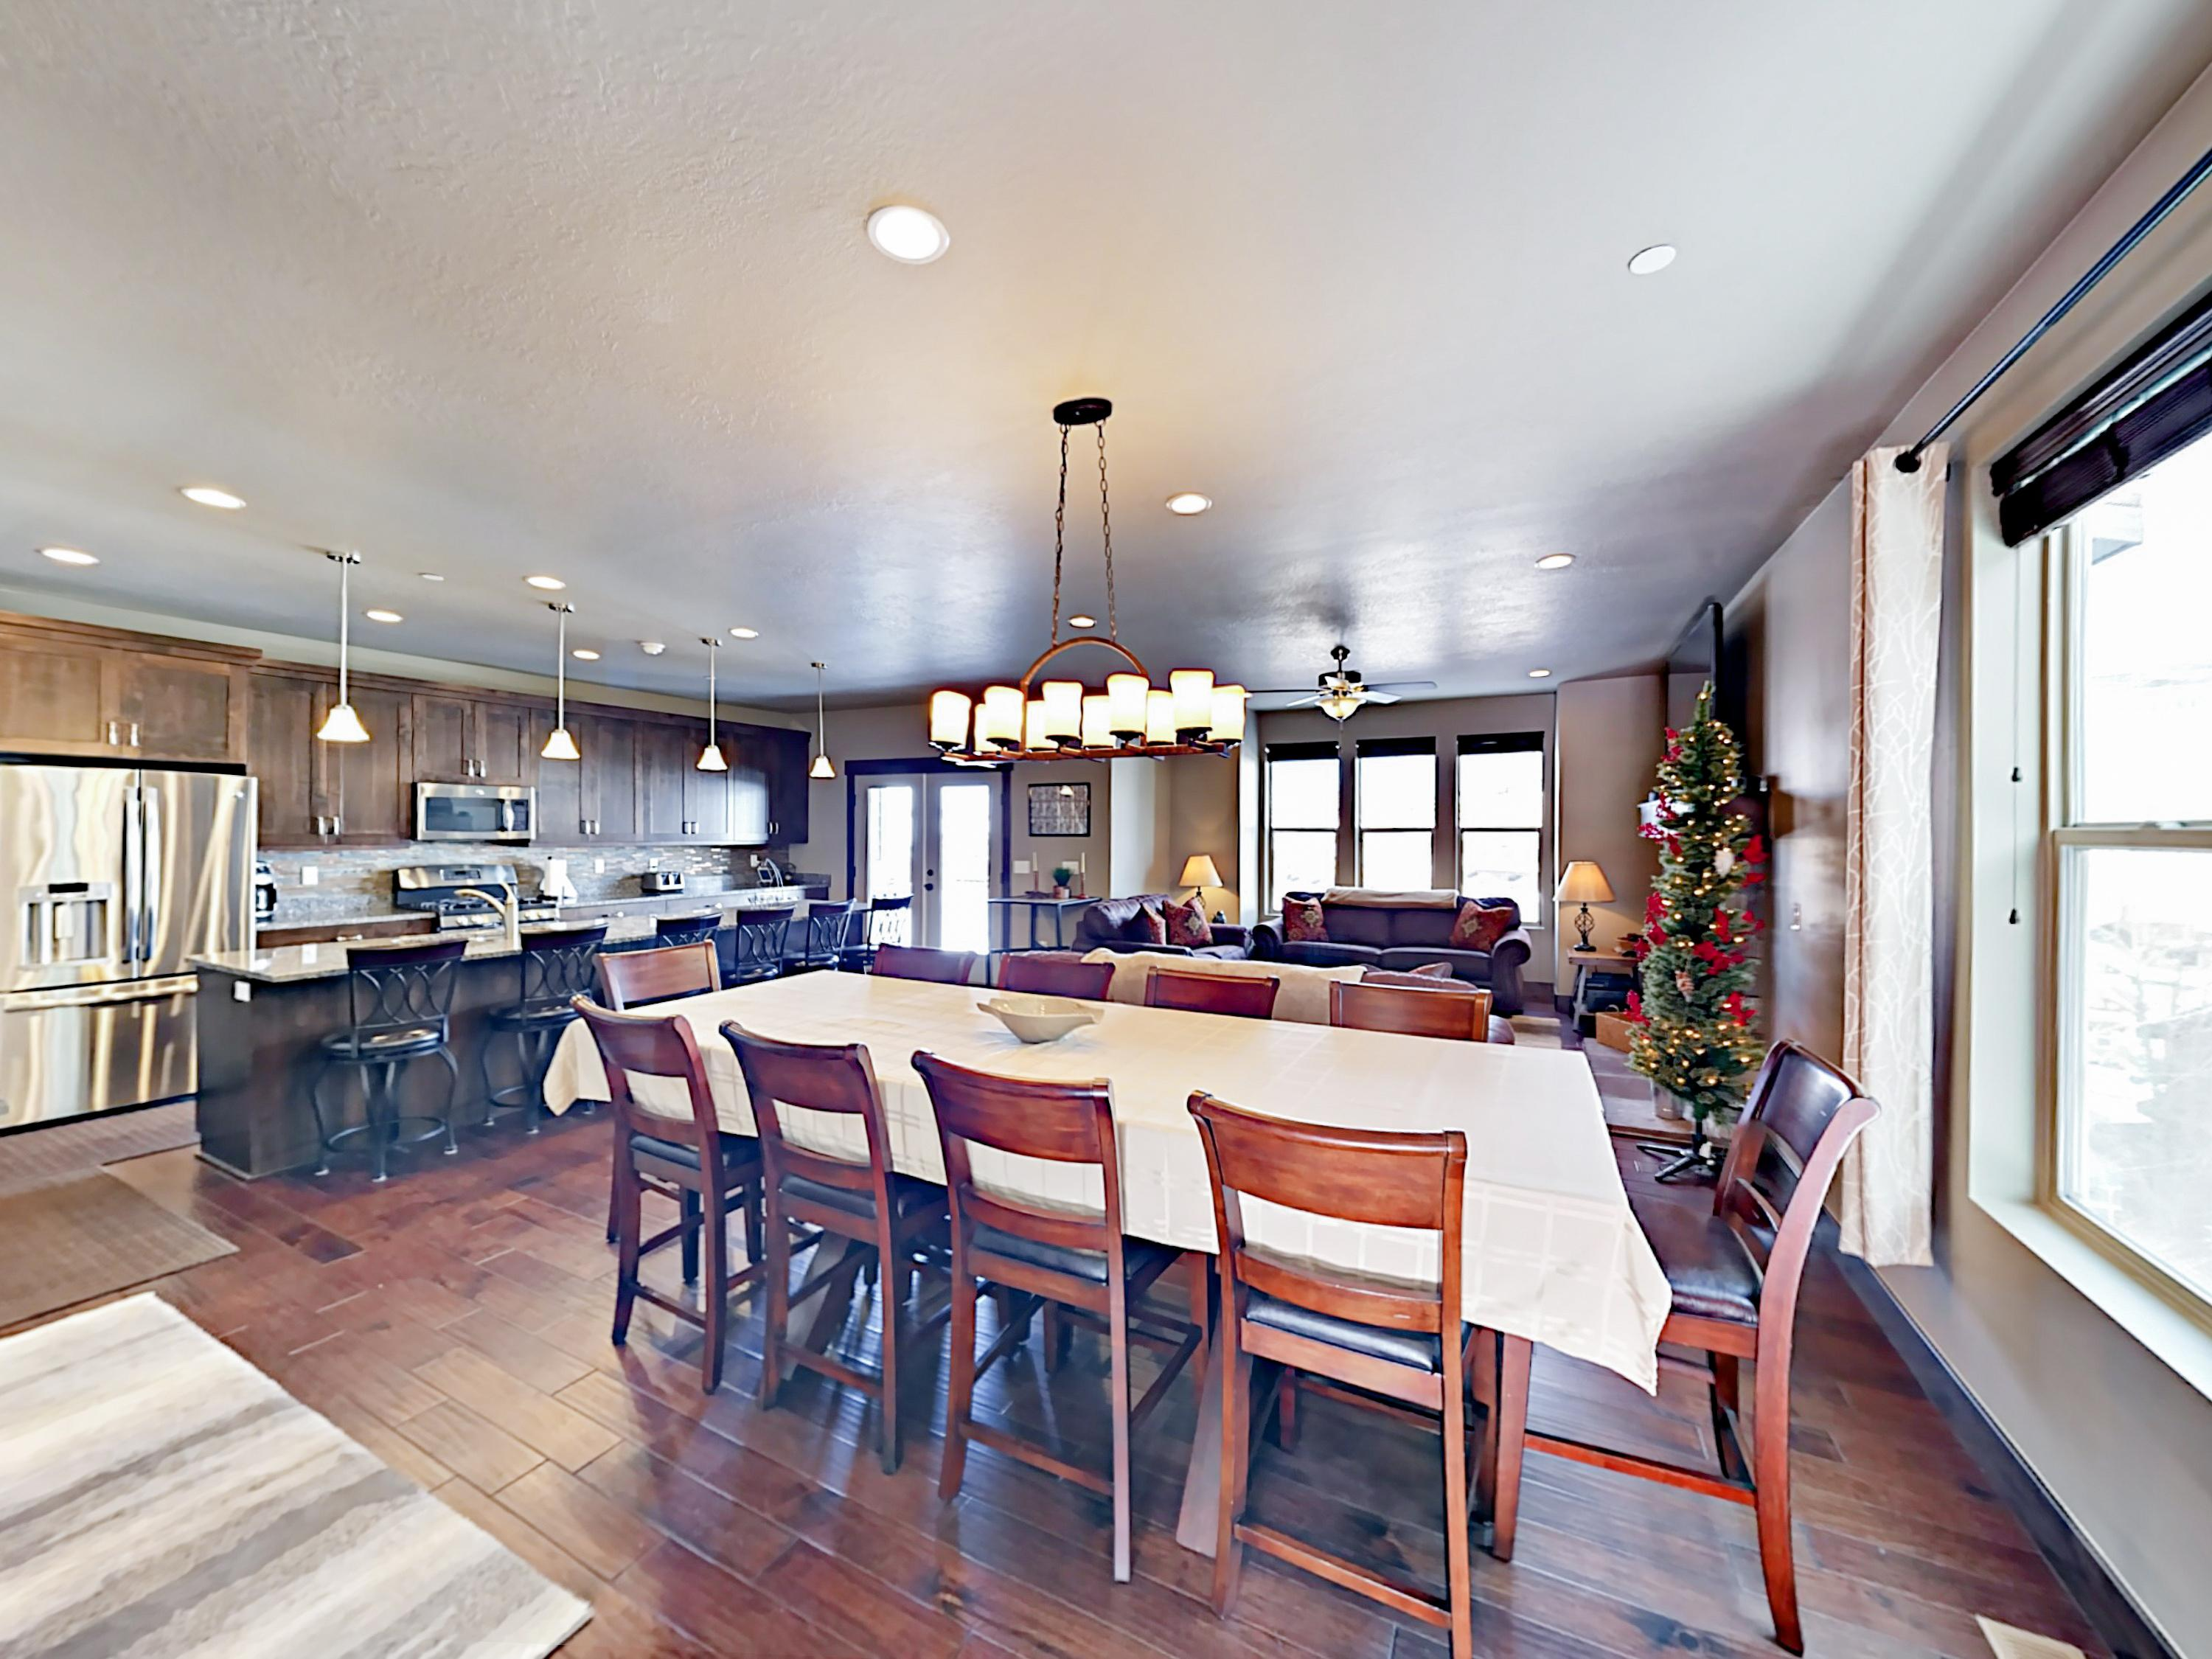 The impressive dining area seats 10 to family-style feasts.